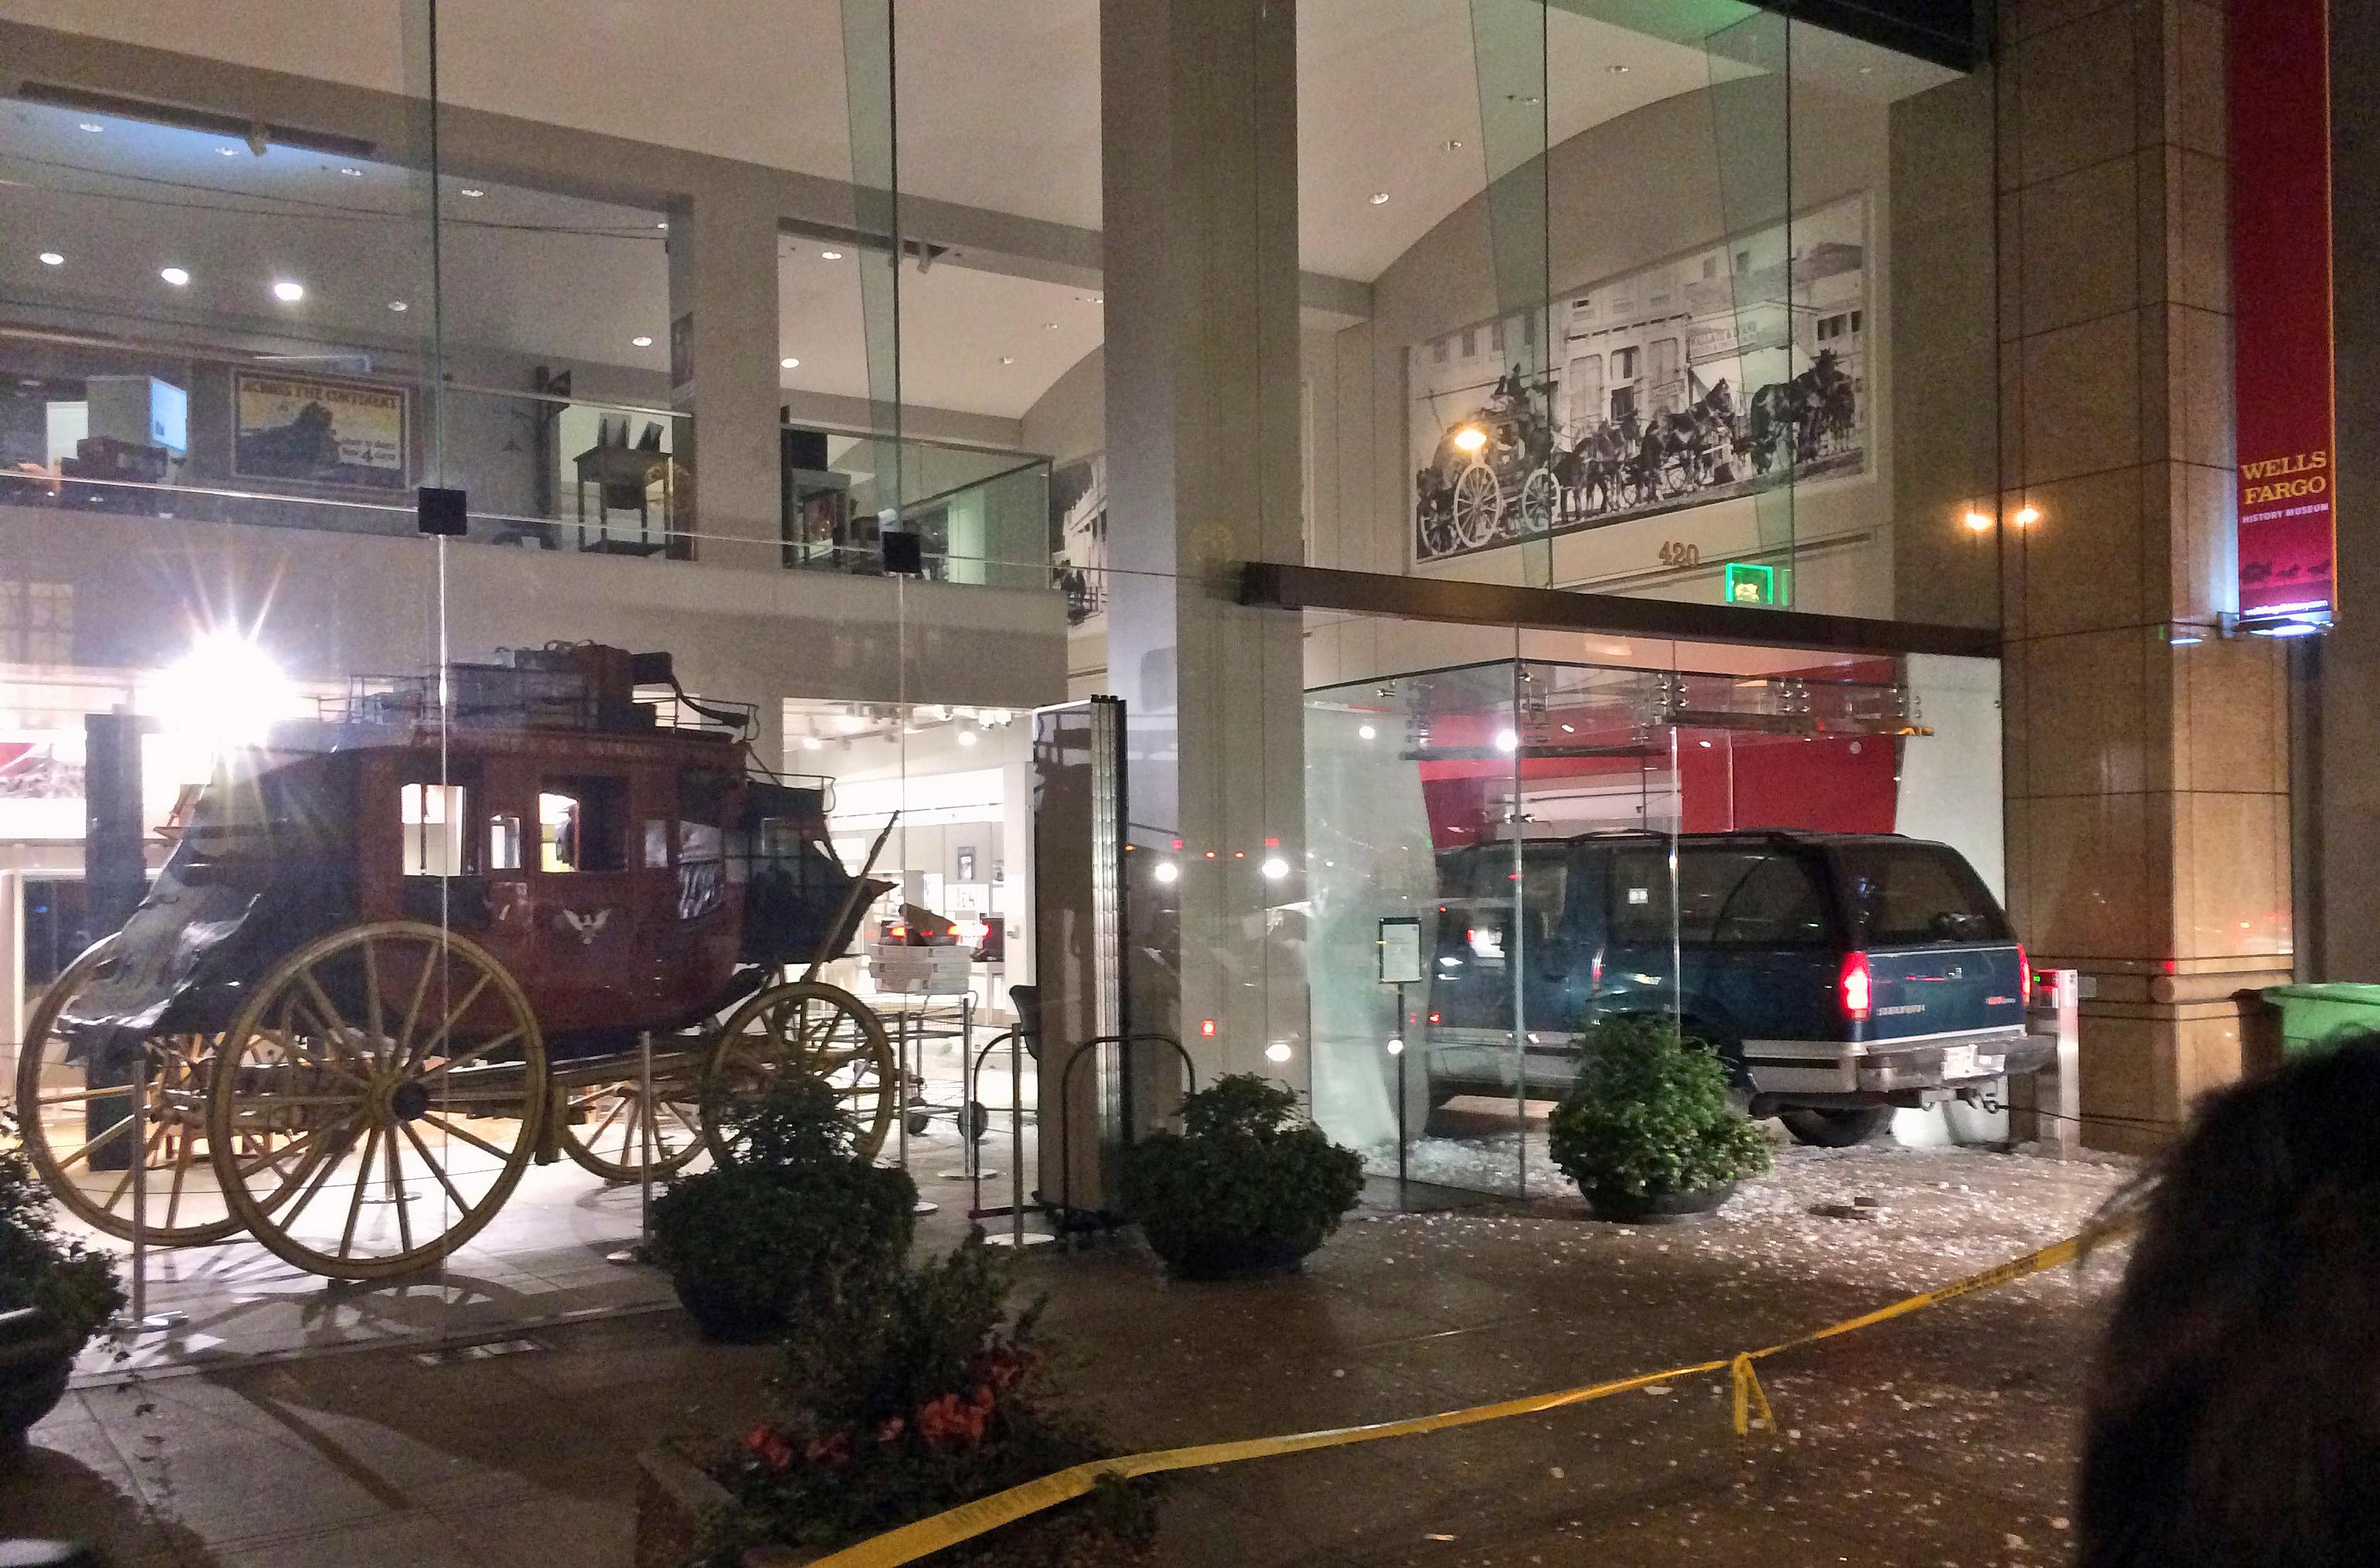 Gold nuggets stolen from Wells Fargo museum in San Francisco